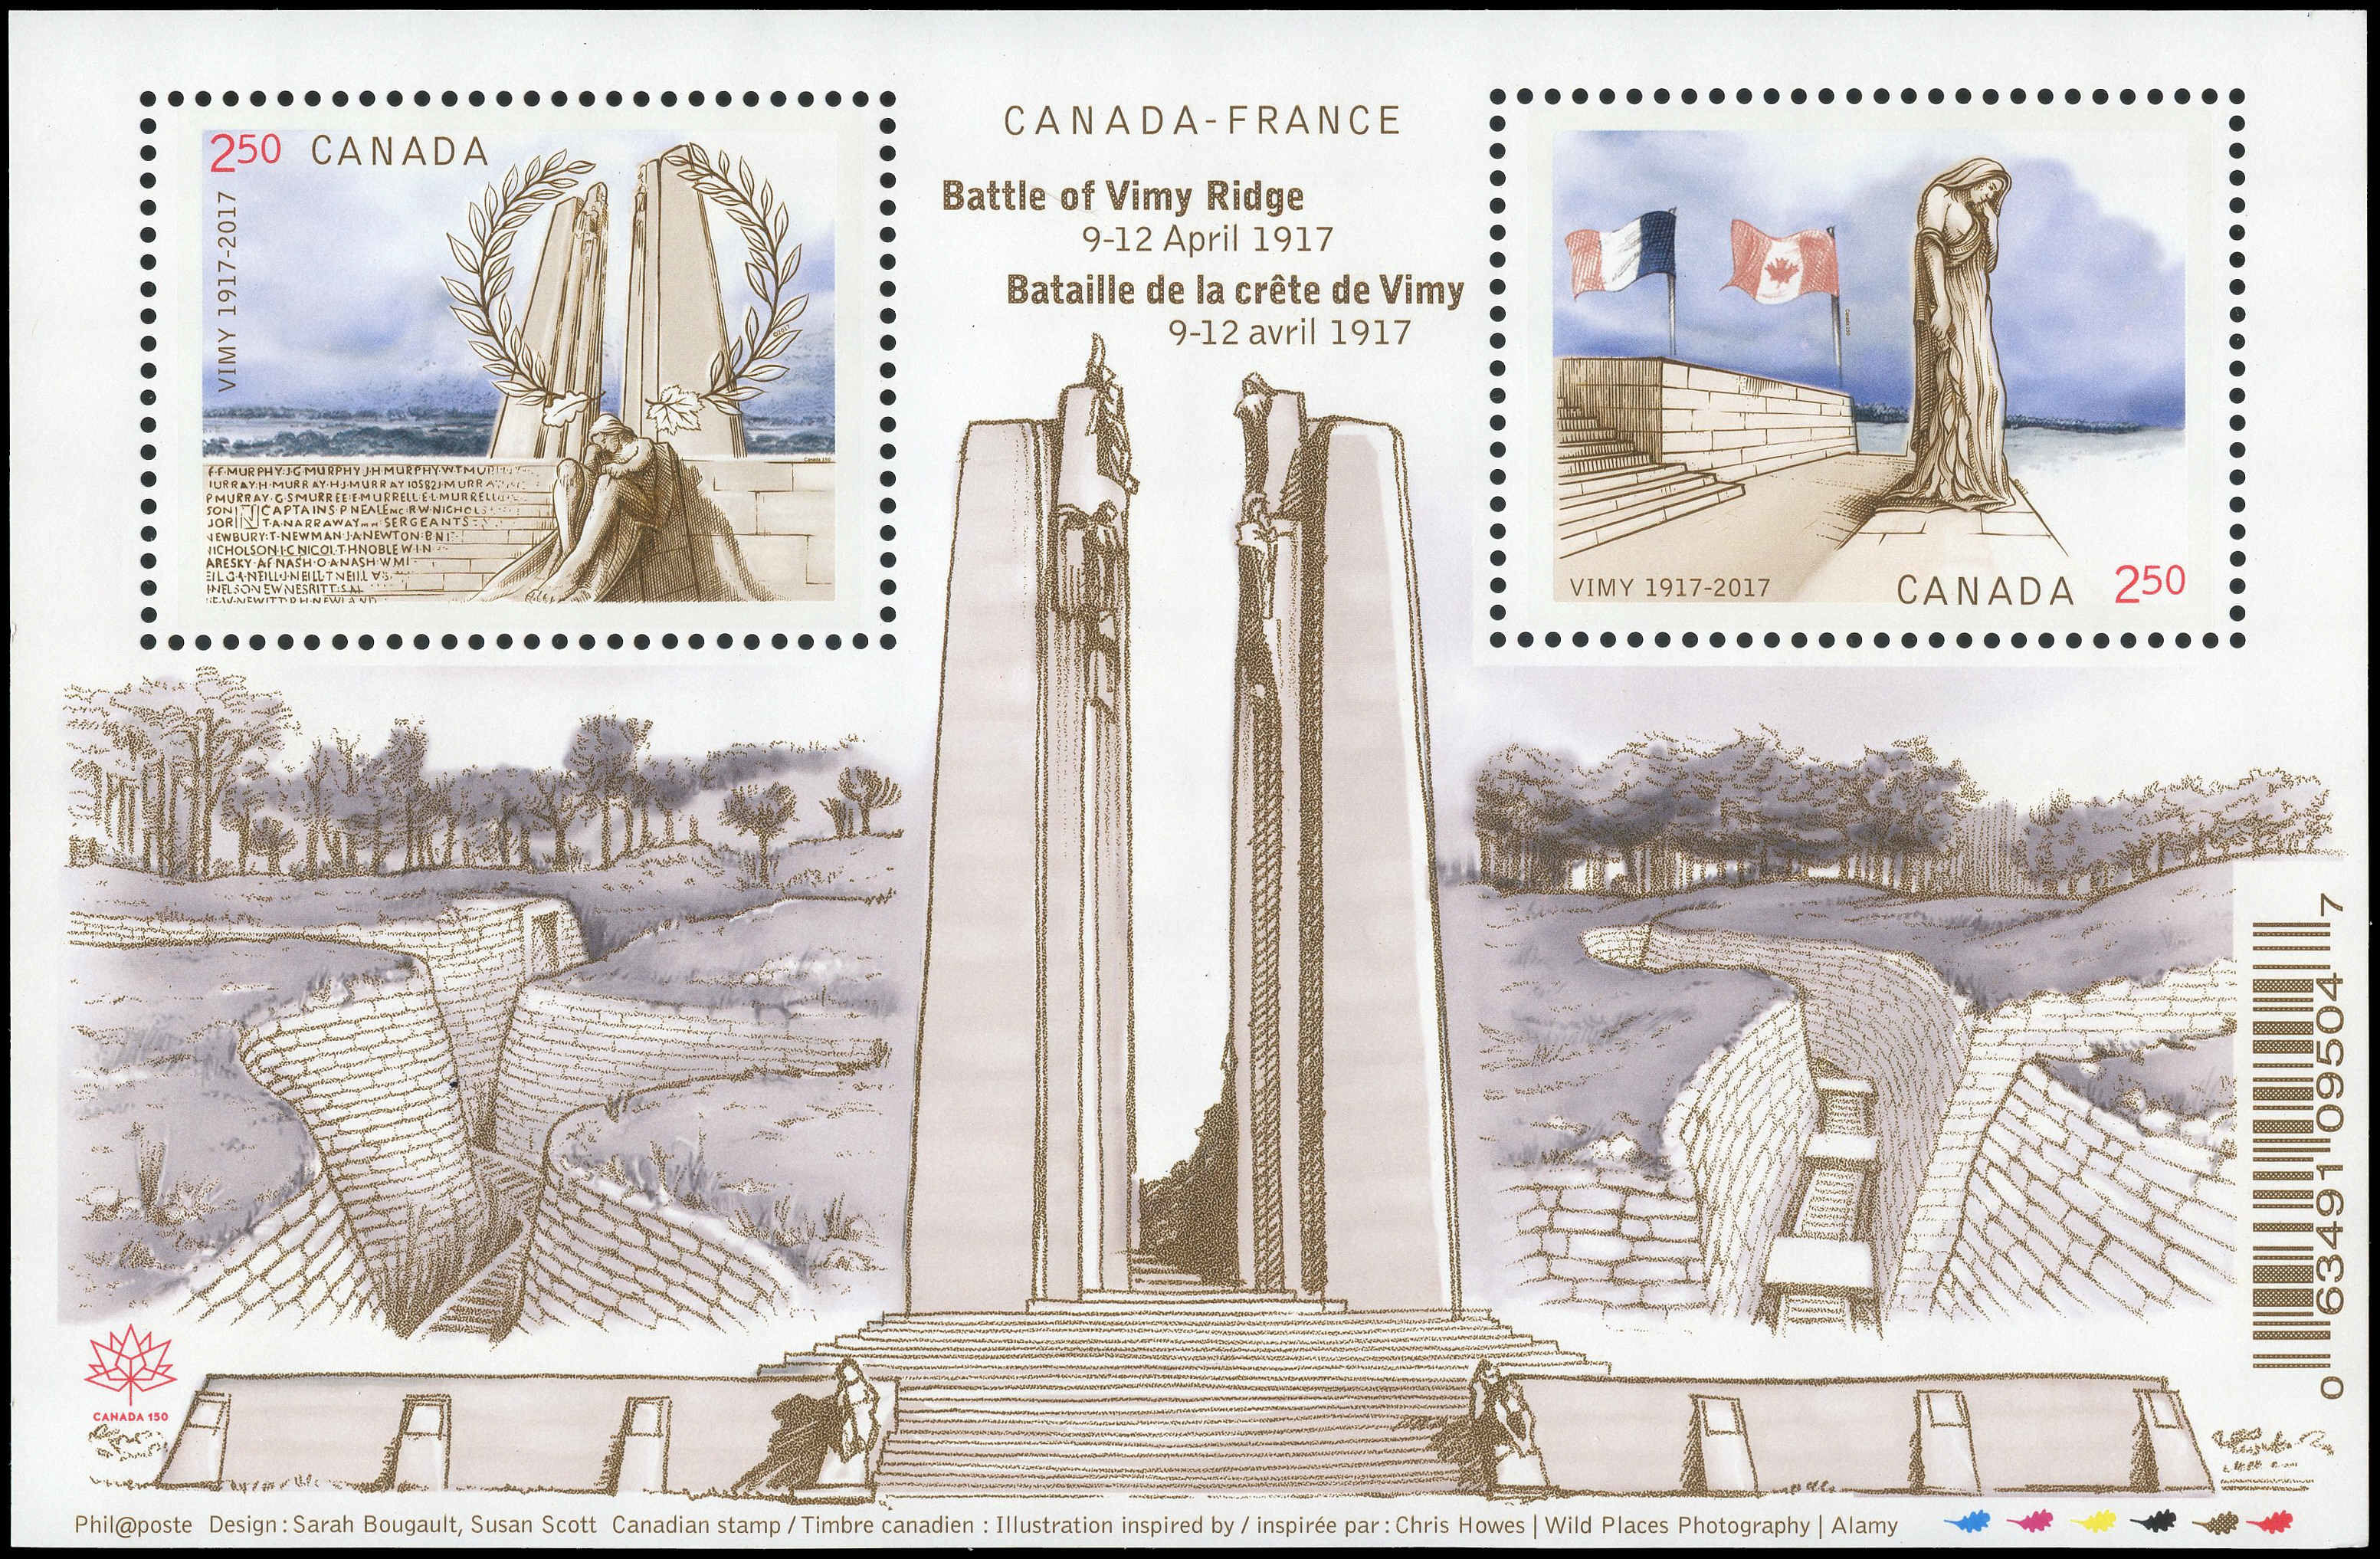 battle of vimy ridge canada essay Vimy ridge marked canada's birth as a nation, g-g says on 95th aniversary of battle david johnston and a canadian delegation of politicians and 5,000 students.